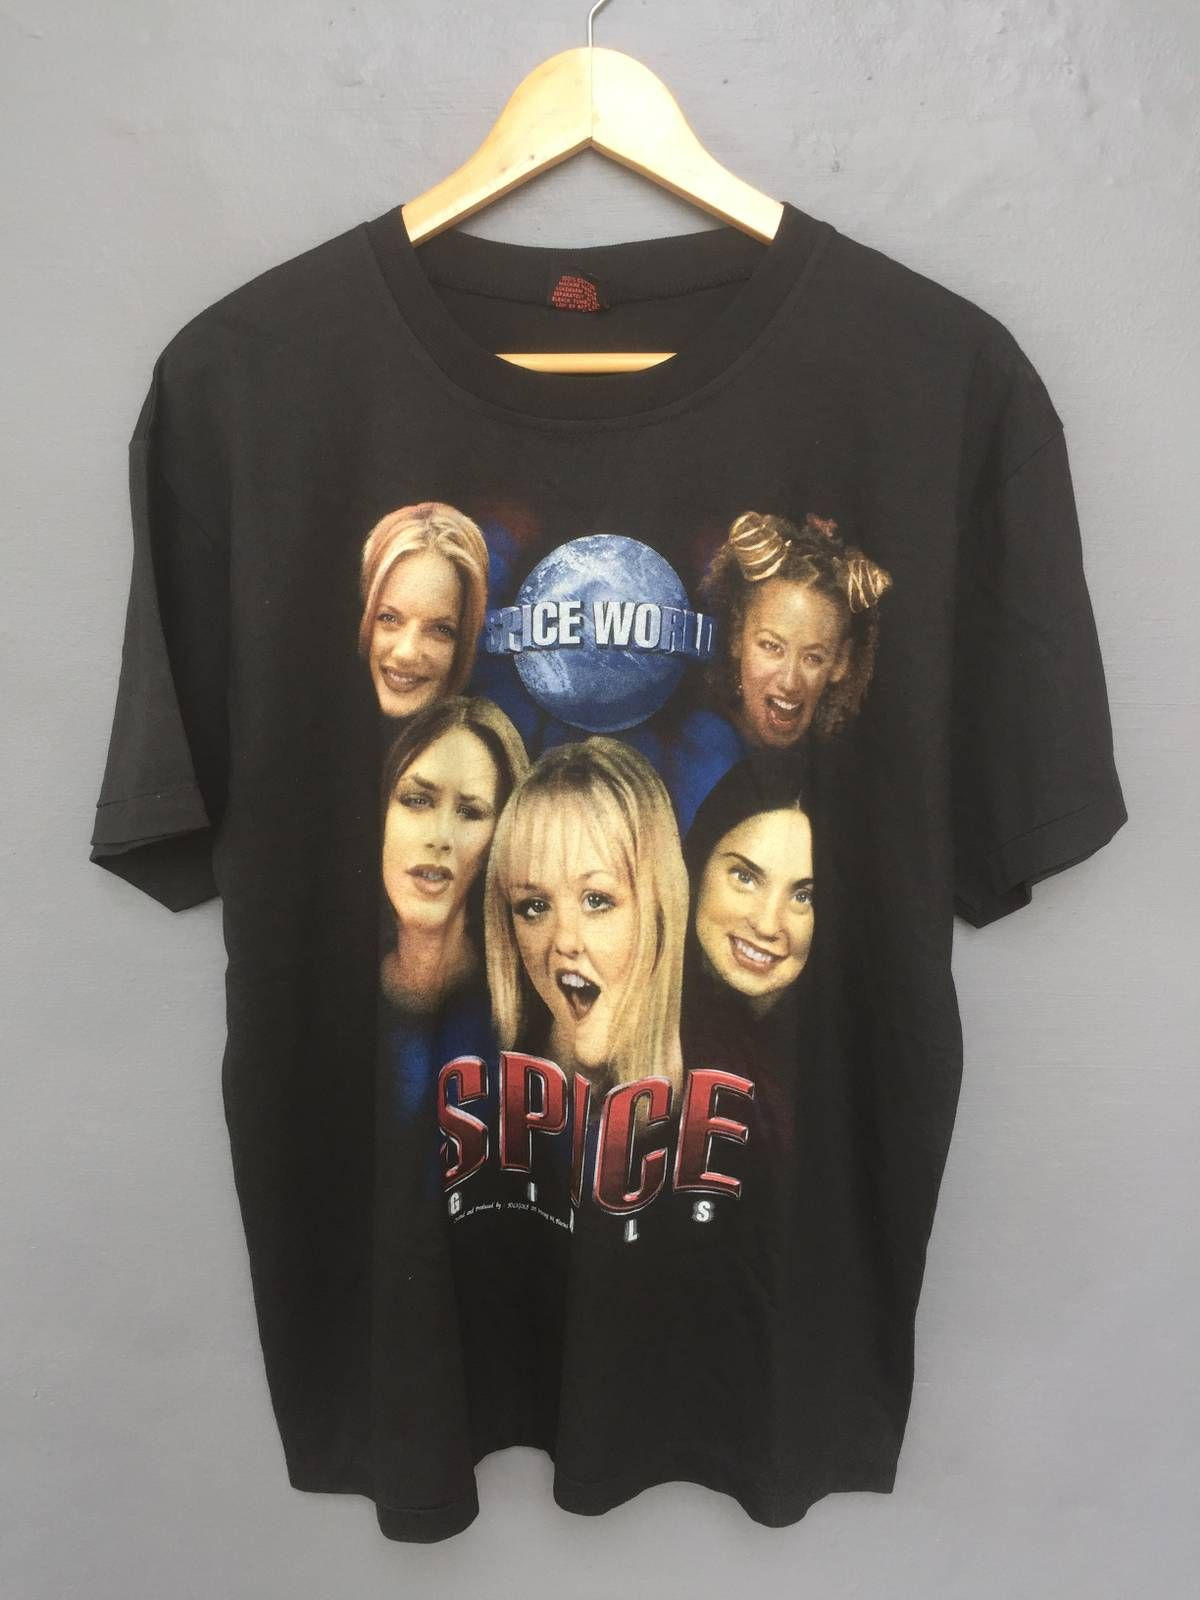 Vintage Spice Girls Shirt 90s Single Stitch Made In Canada Size S Good condition